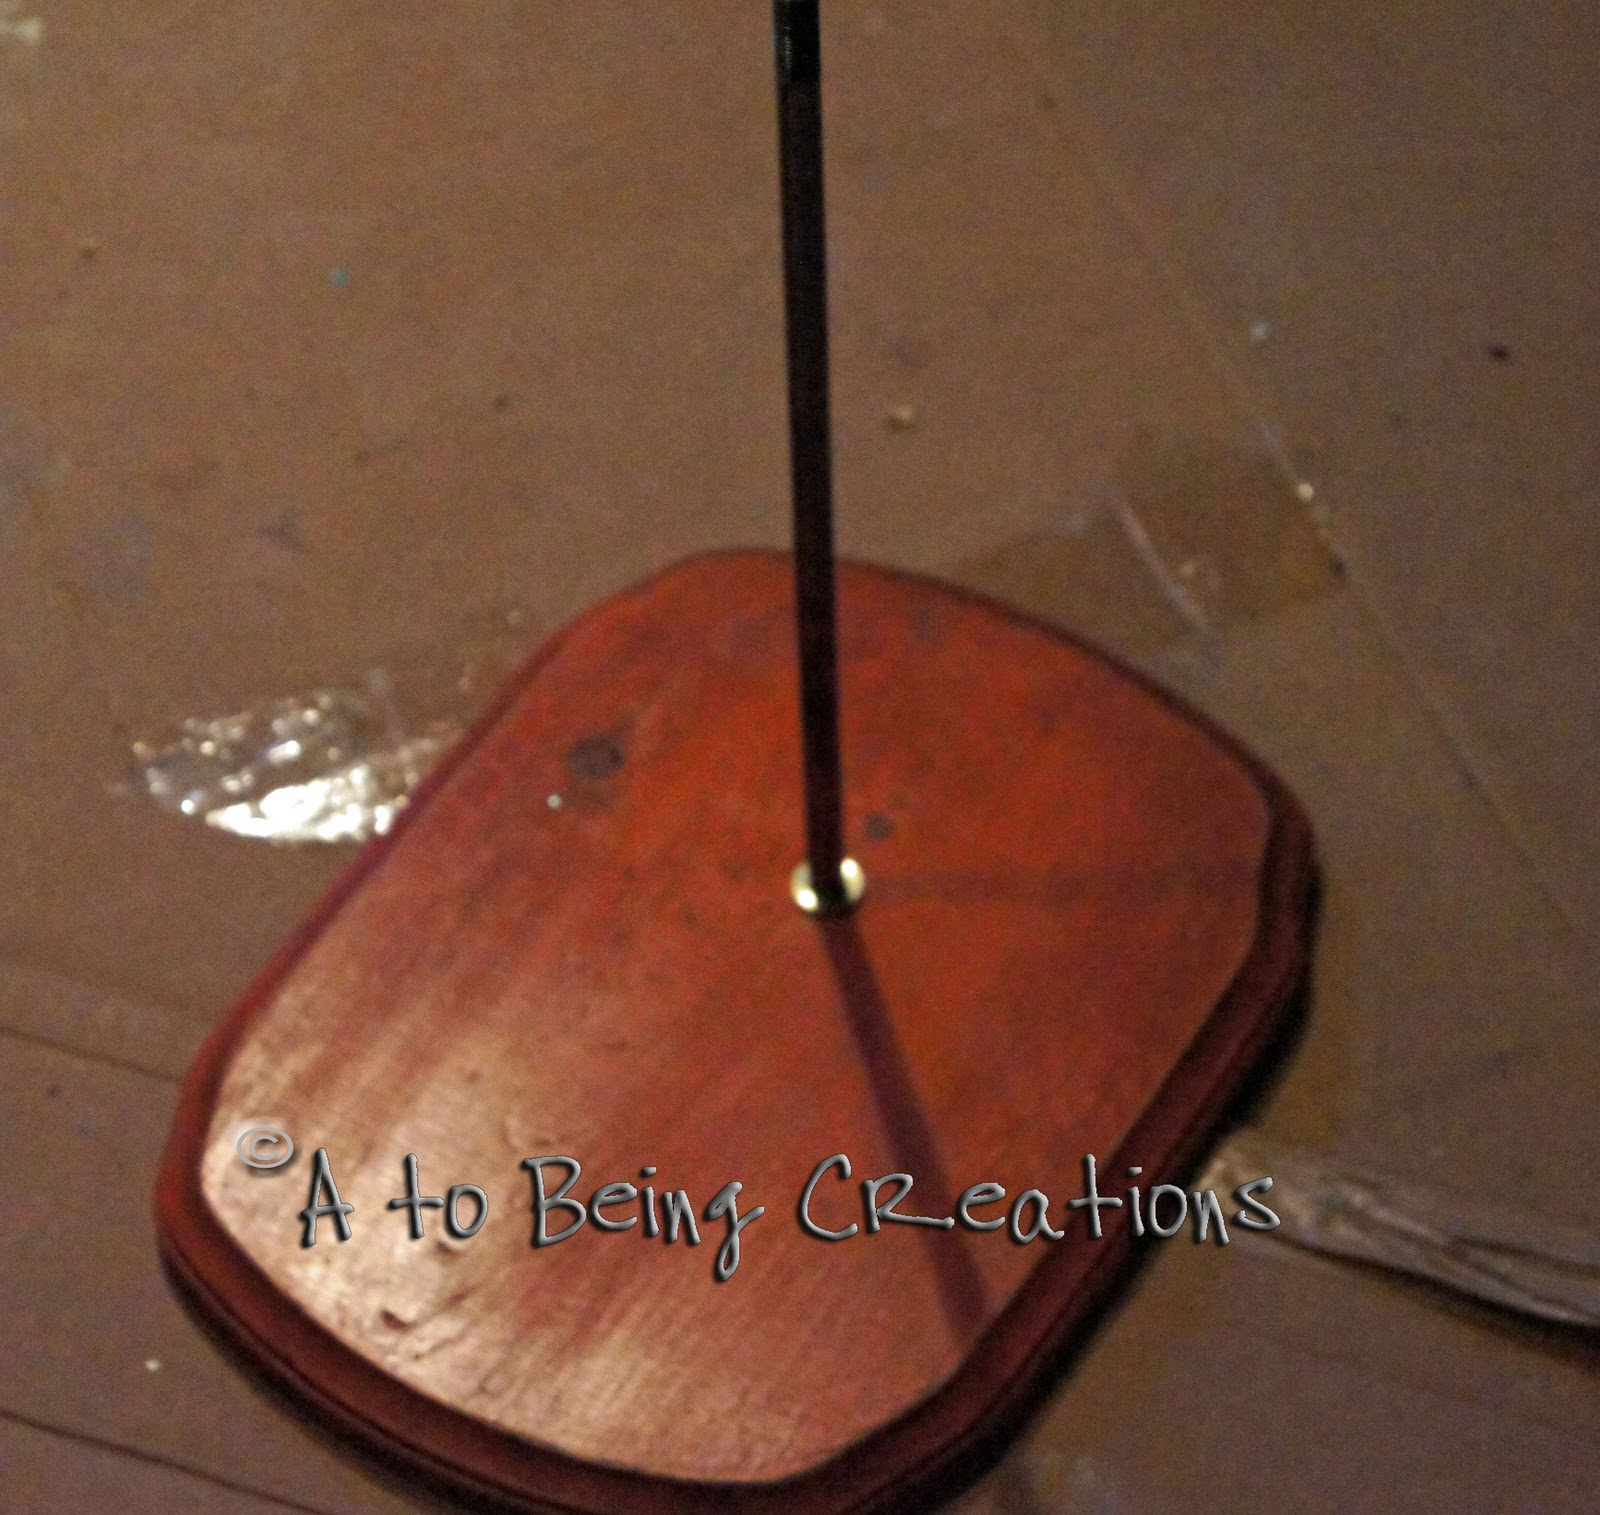 """From A To Being: Goodwill Lamp """"Creation"""" #2 And A Little"""